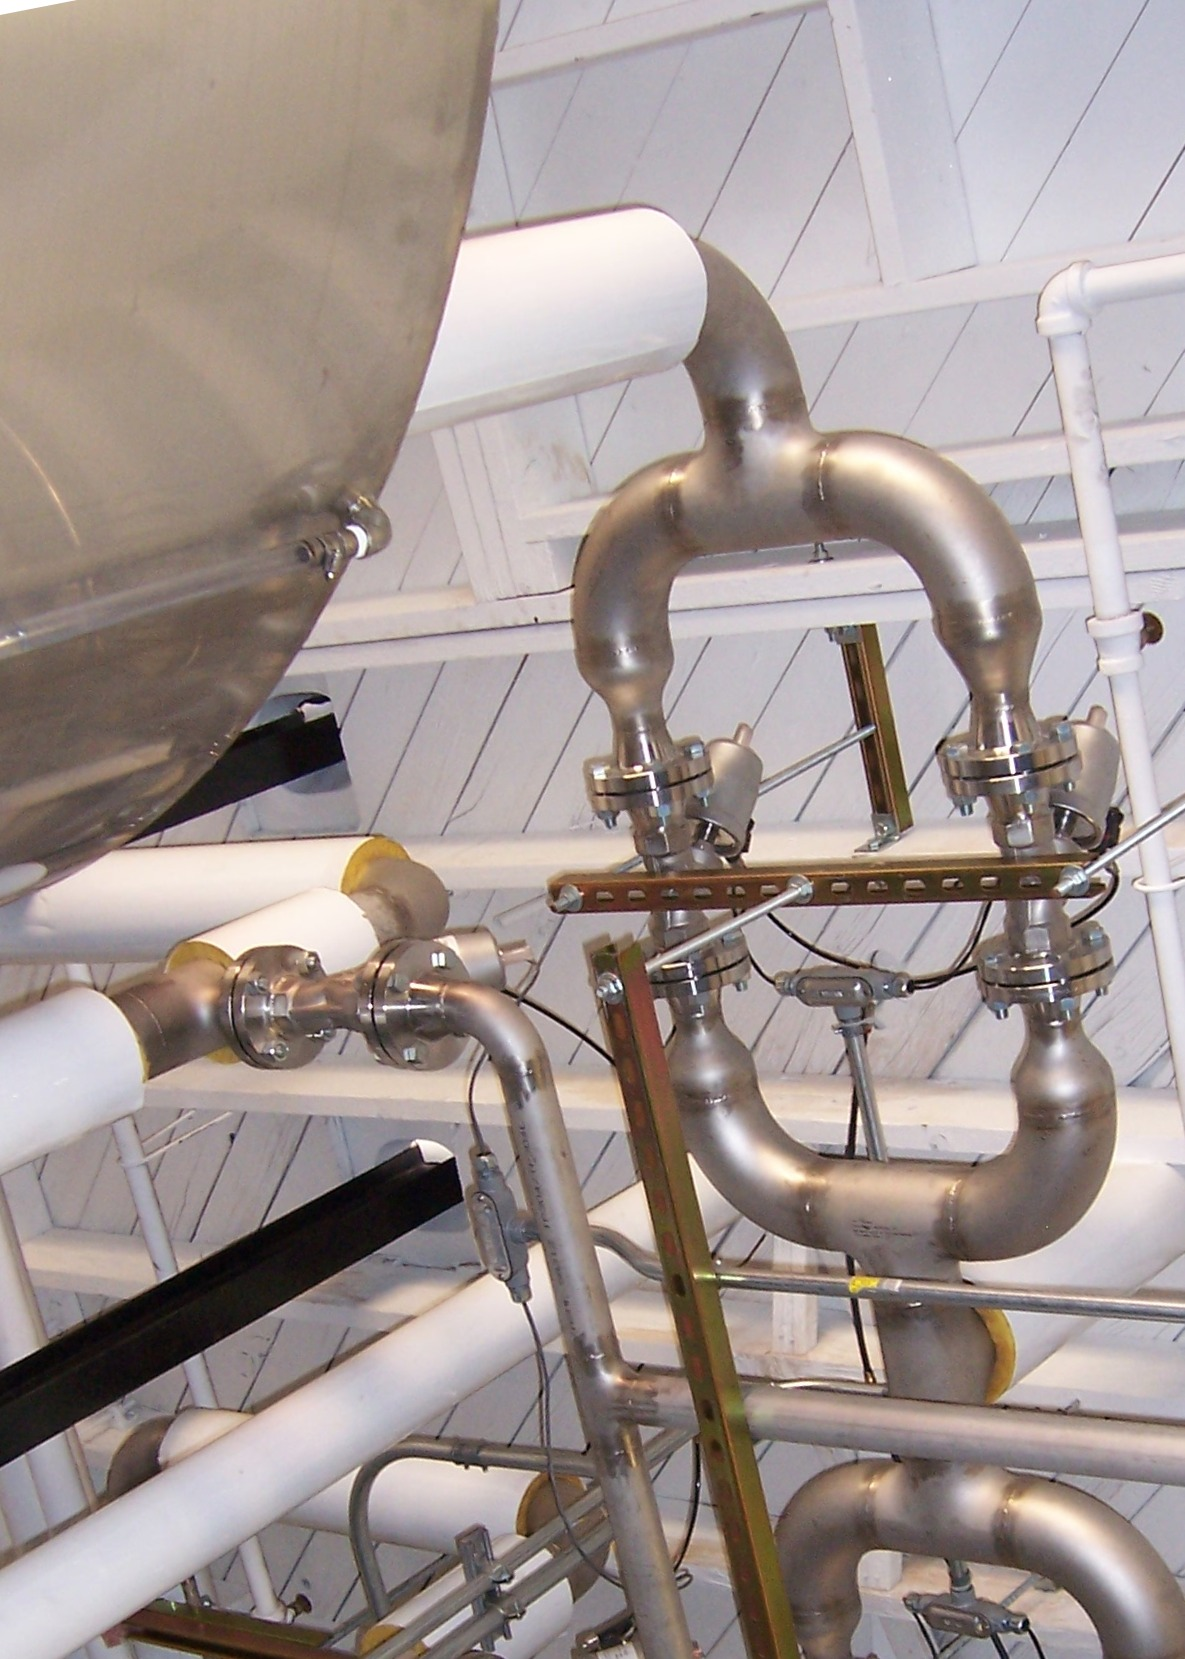 Stainless steel process piping with valves - Carson Valley Inc. - Stainless Steel Specialists